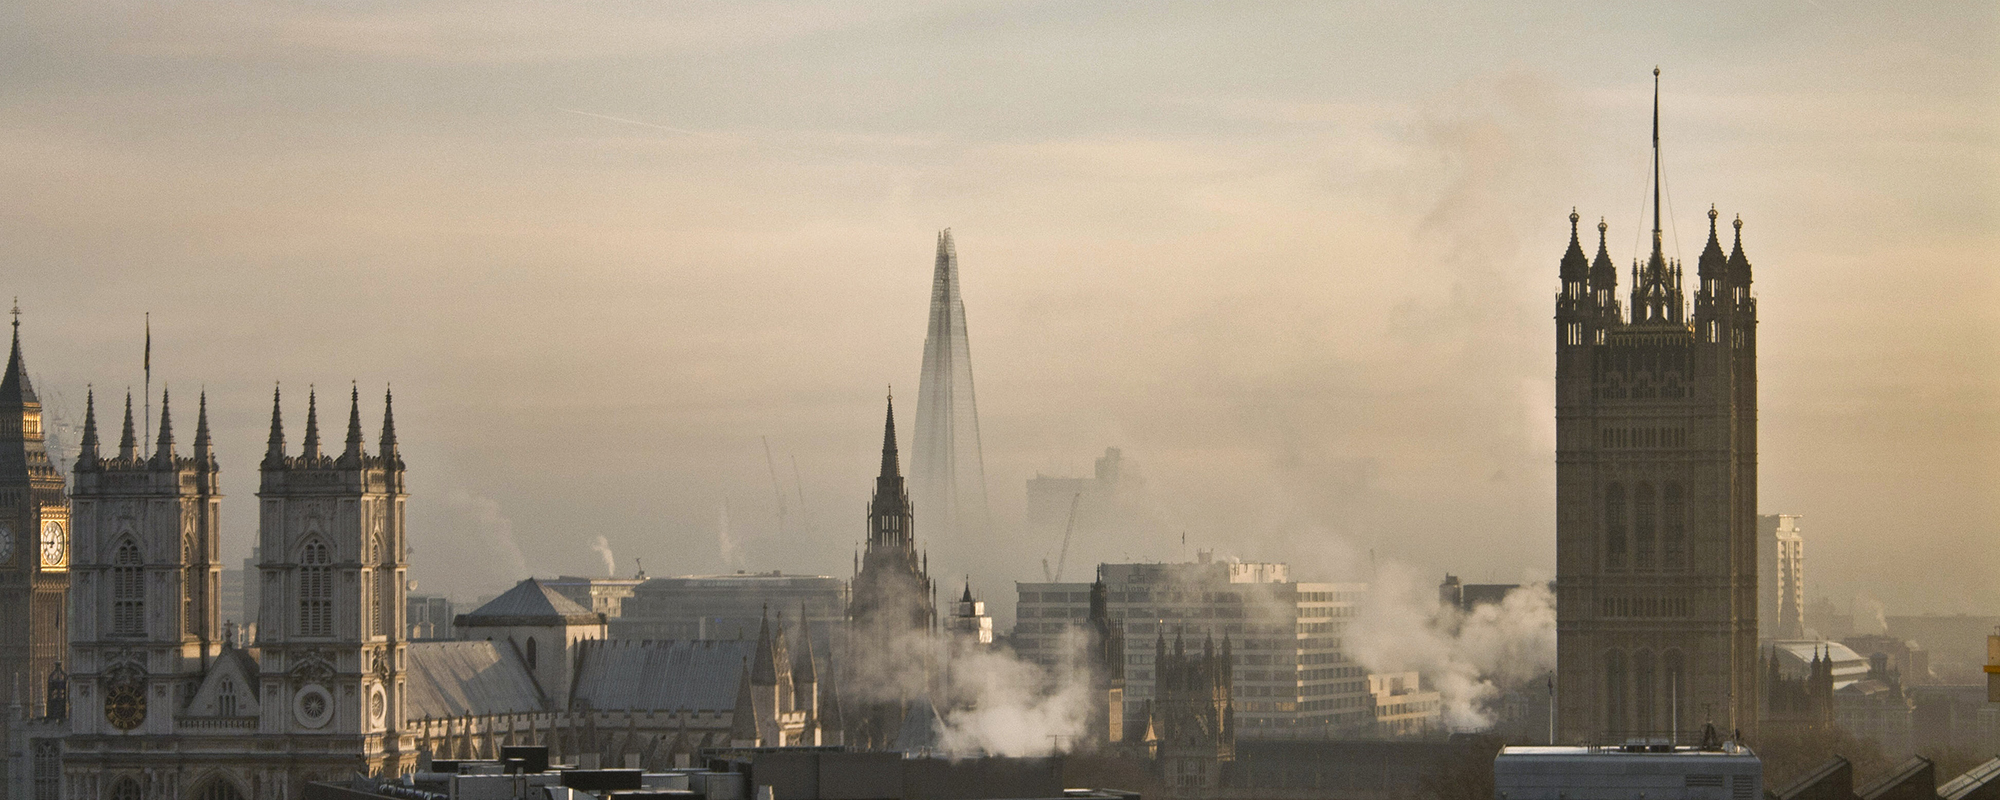 Air pollution in London is one cause of a growing exodus. Getty Images